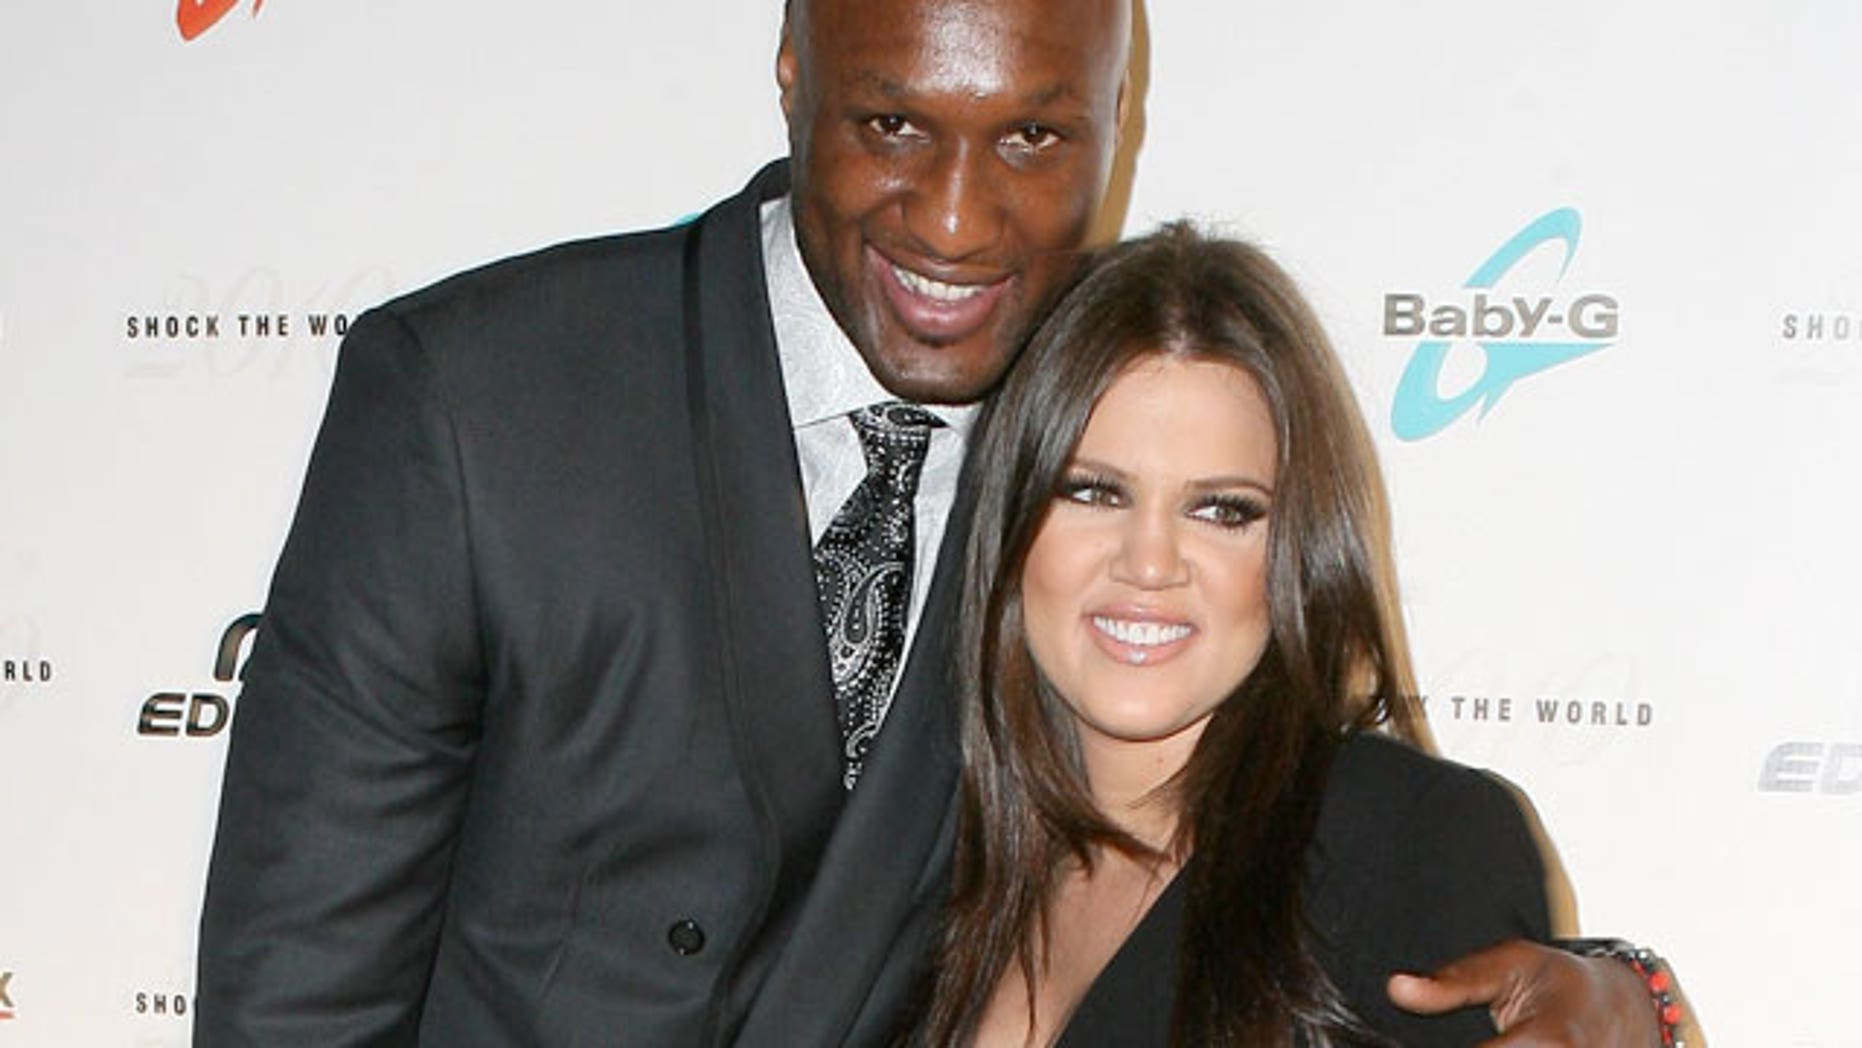 Lamar Odom and wife Khloe Kardashian. (X17 Online)